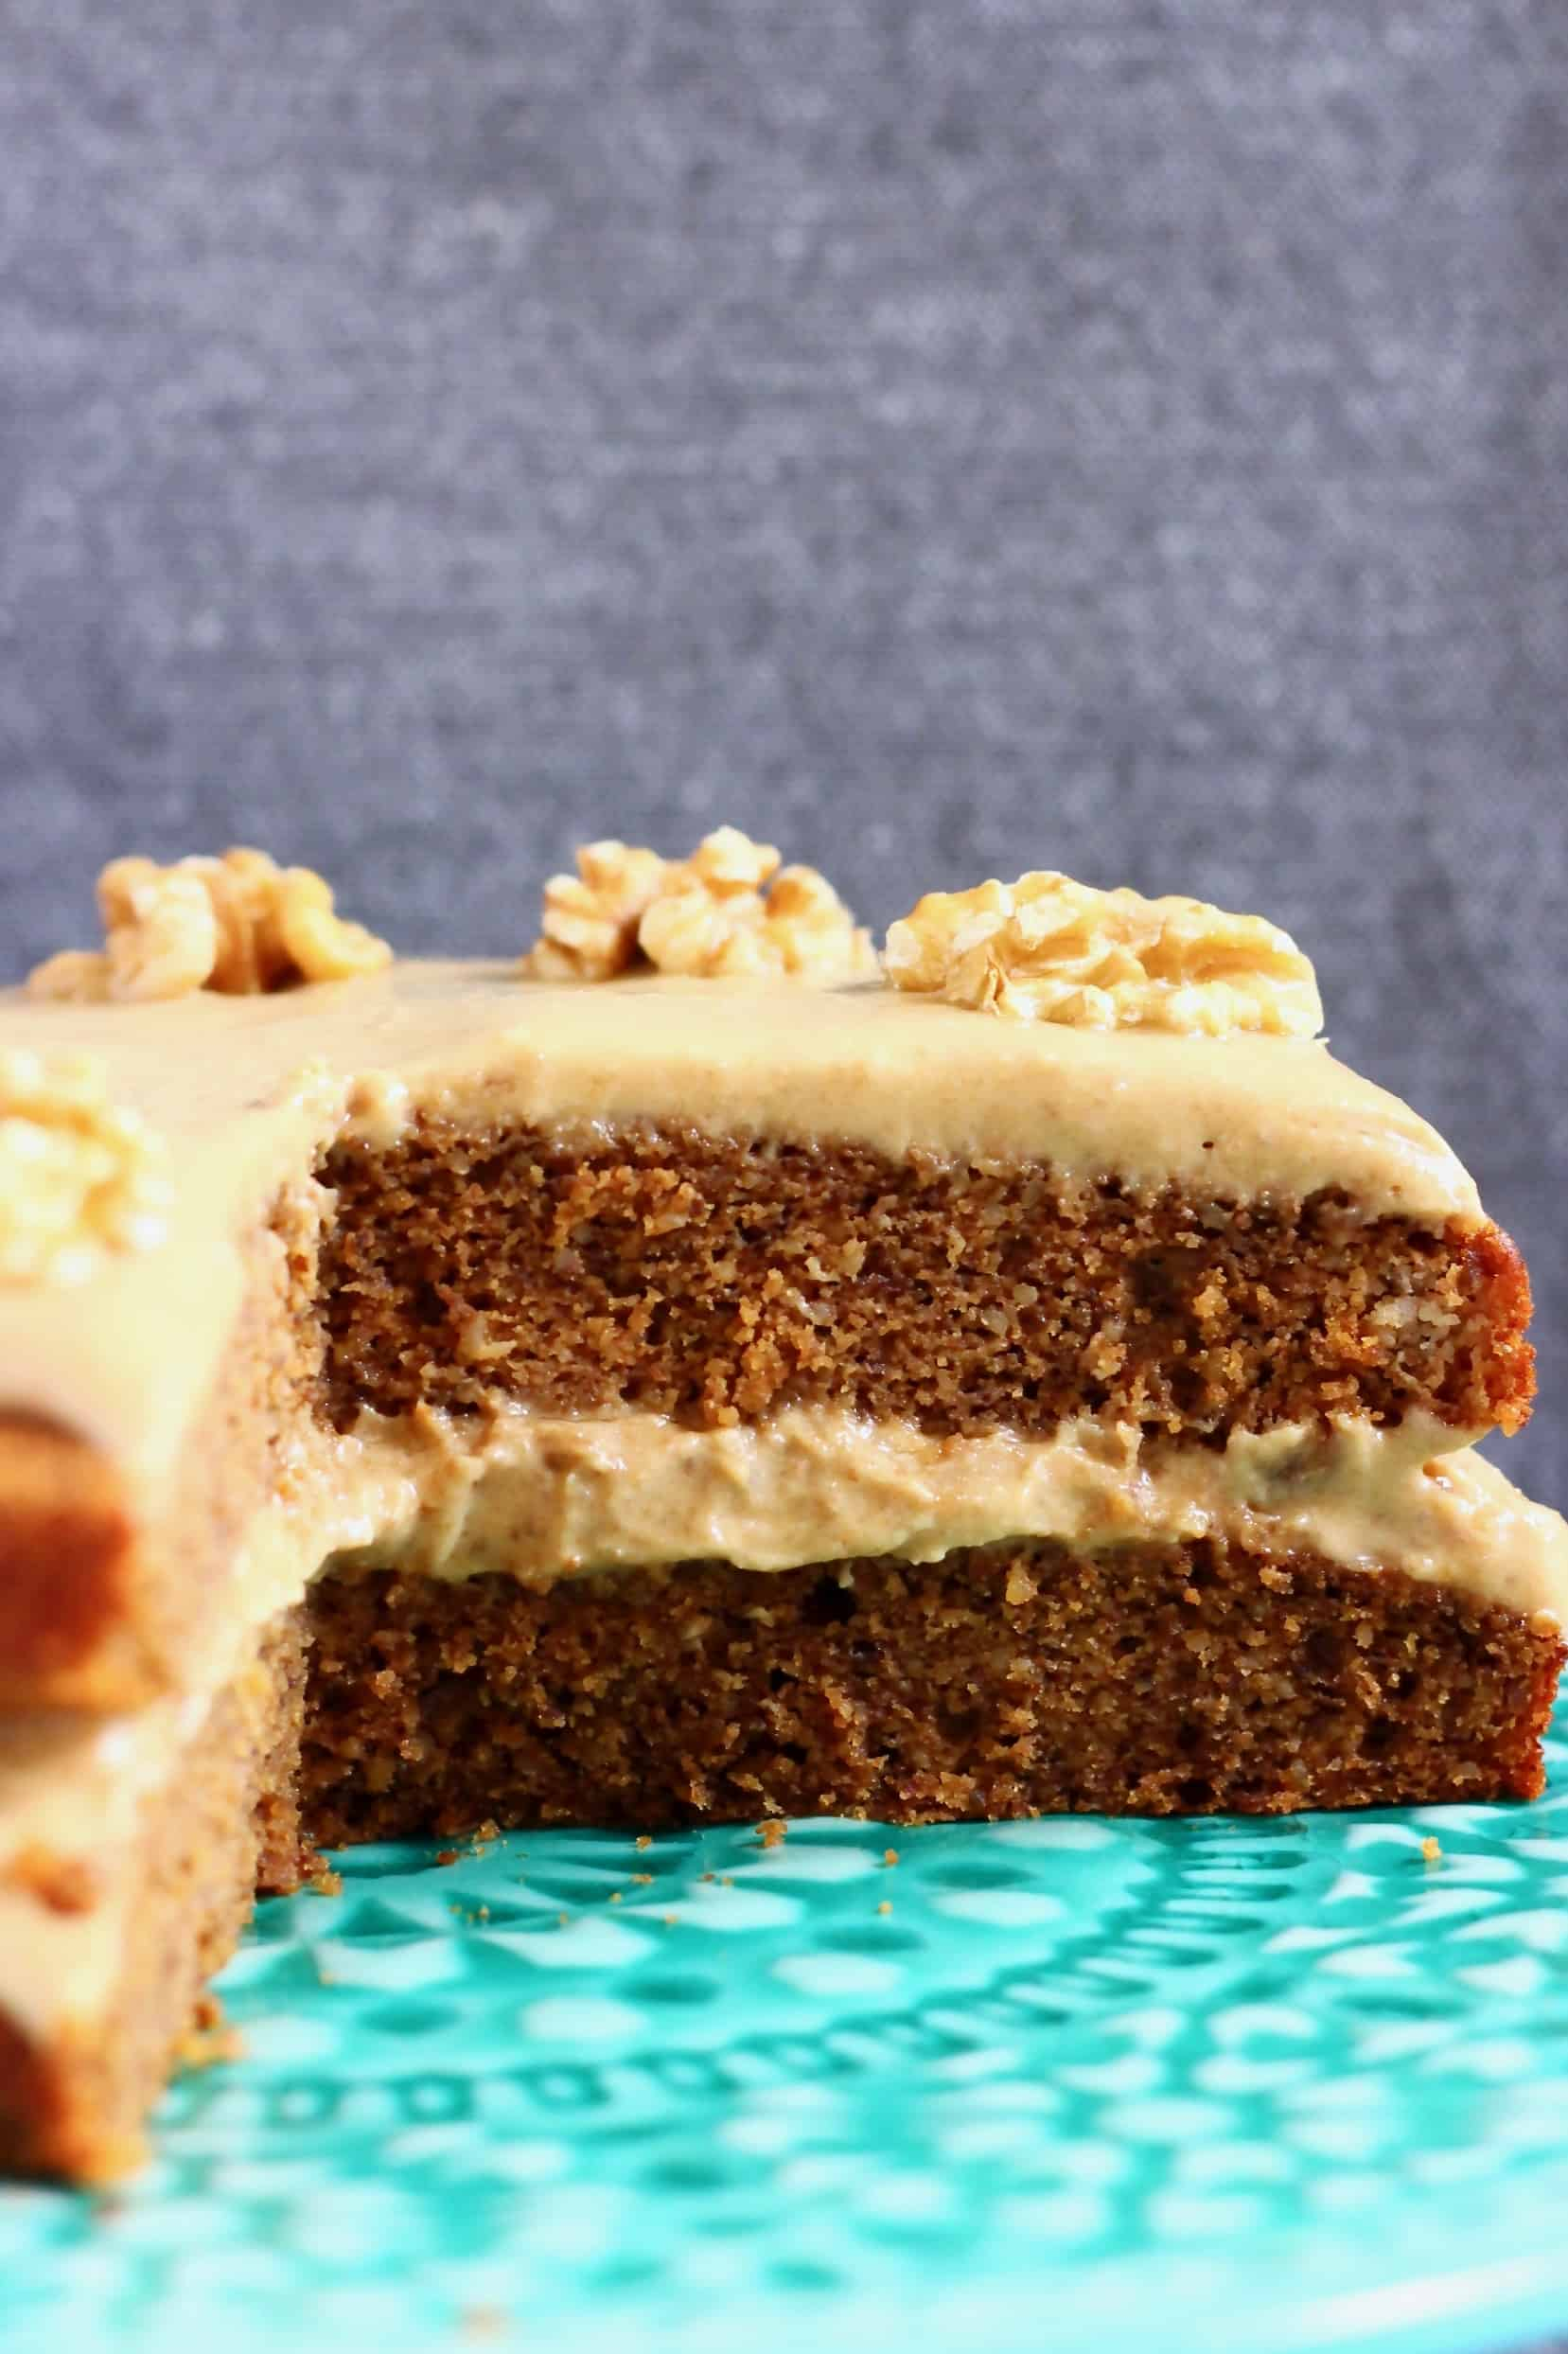 A sliced gluten-free vegan coffee cake with coffee frosting and walnuts on a cake stand